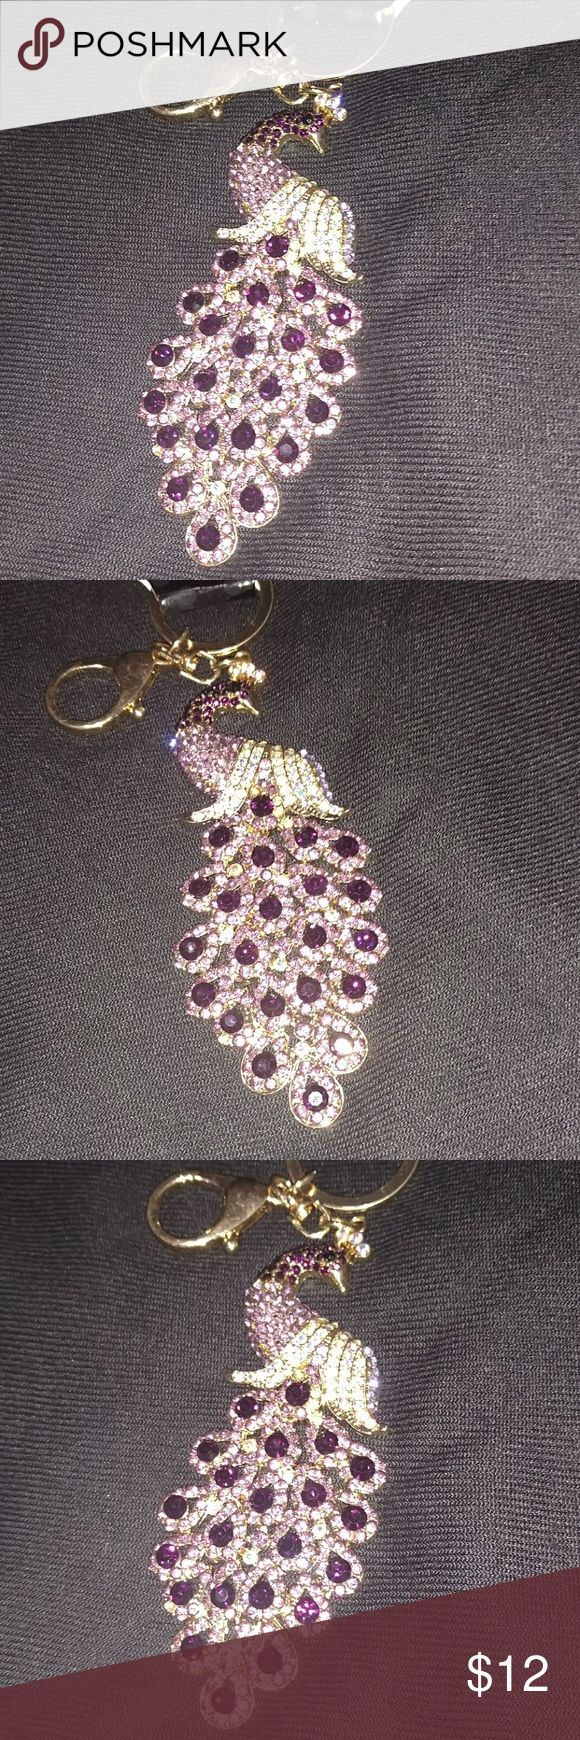 Gorgeous Peacock keychain. Amethyst and deep purple stones. Very large 6 inches! Made by Cinderella! Lab created stones. Jewelry